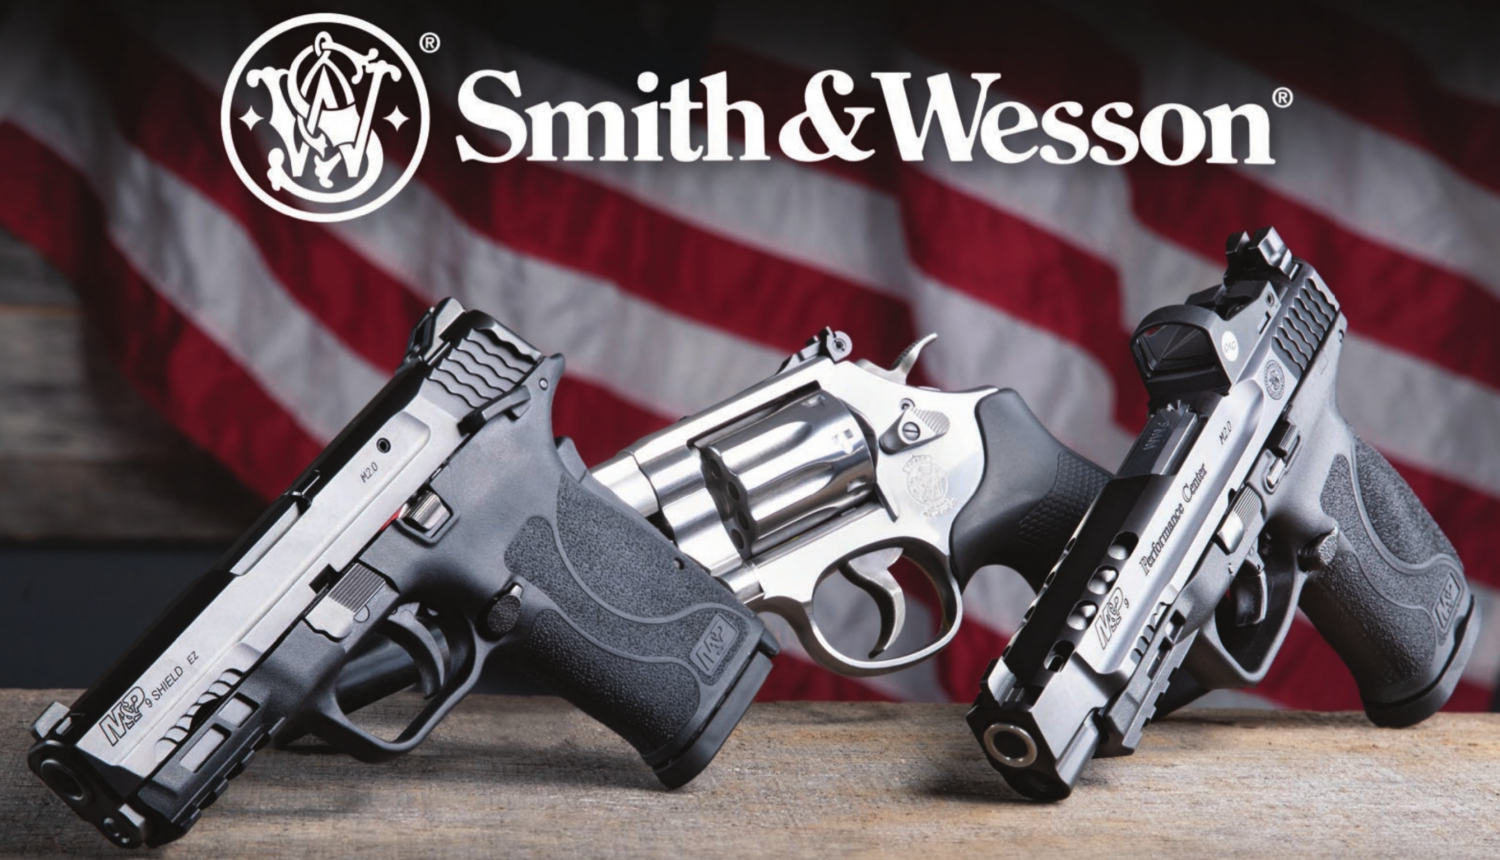 Smith & Wesson Sees 102% Sales Increase from First Time Gun Buyers